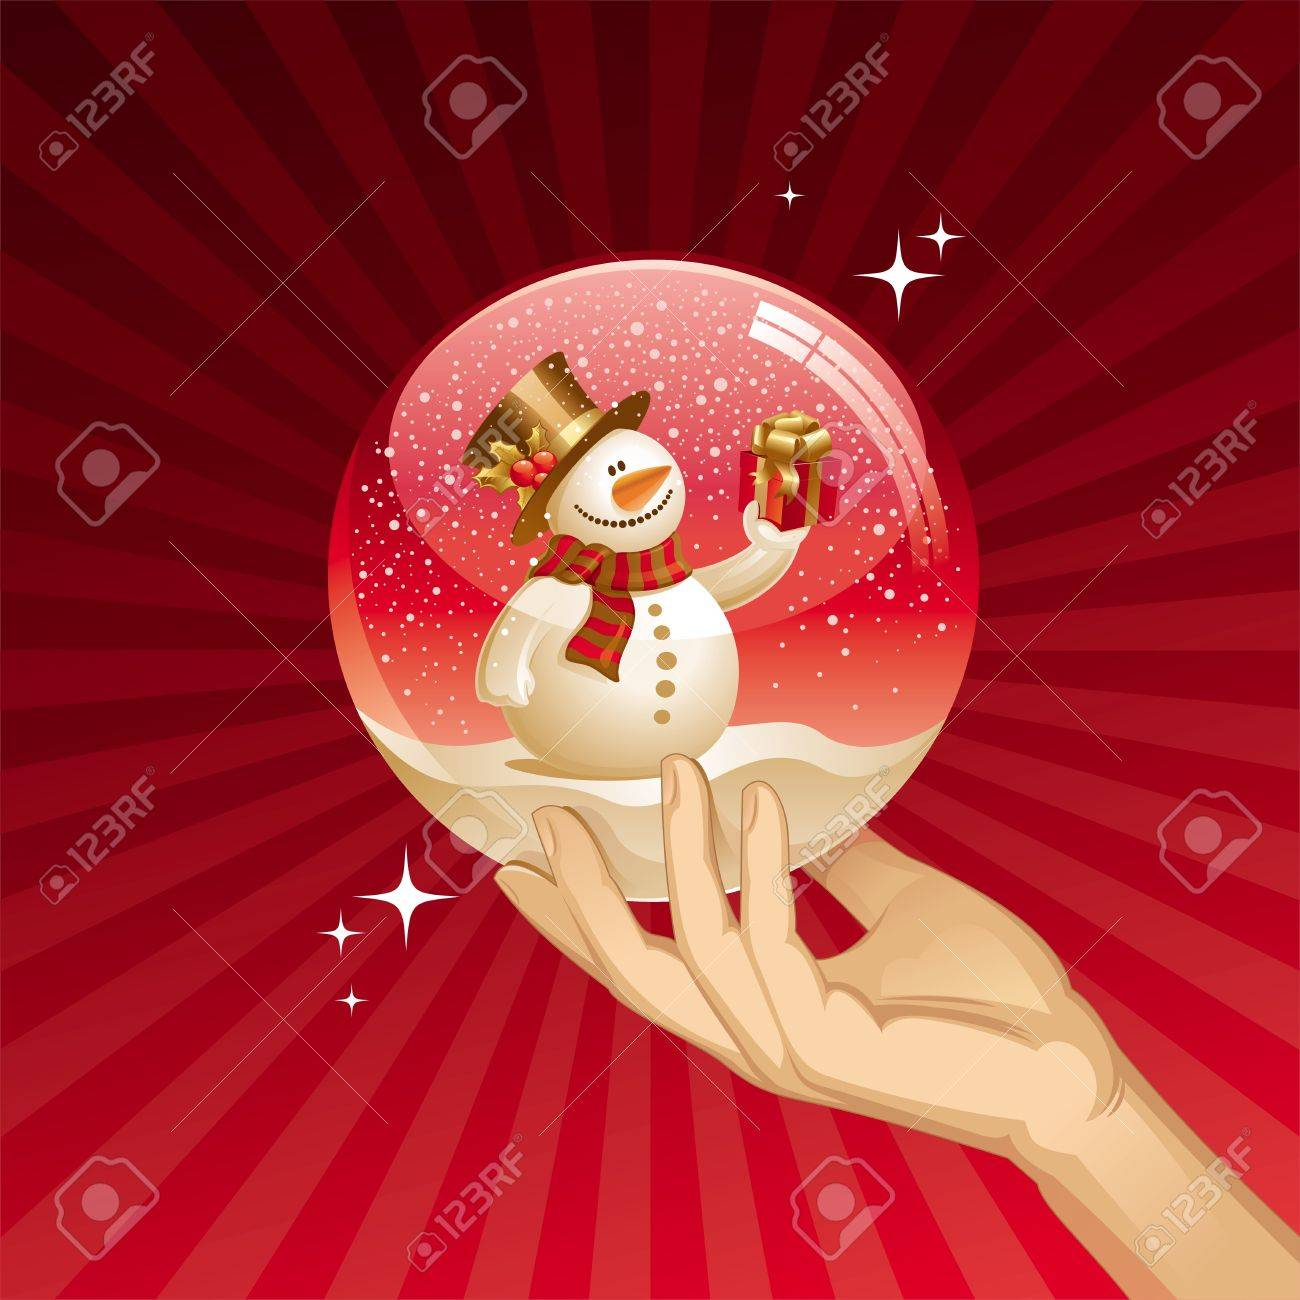 Snowman with gift in a snow globe - vector Christmas illustration Stock Vector - 9934972